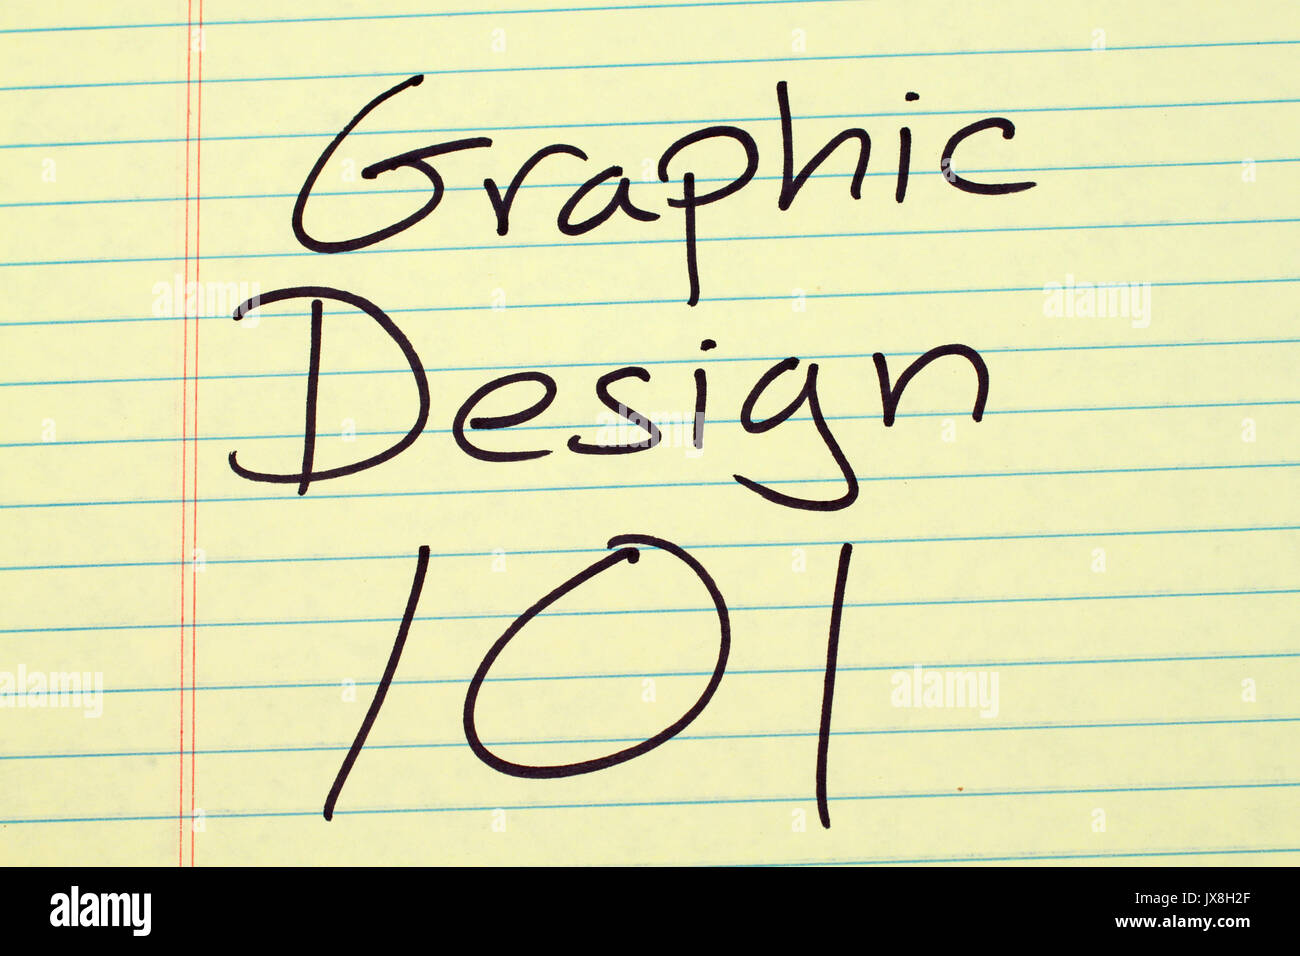 The words 'Graphic Design 101' on a yellow legal pad - Stock Image